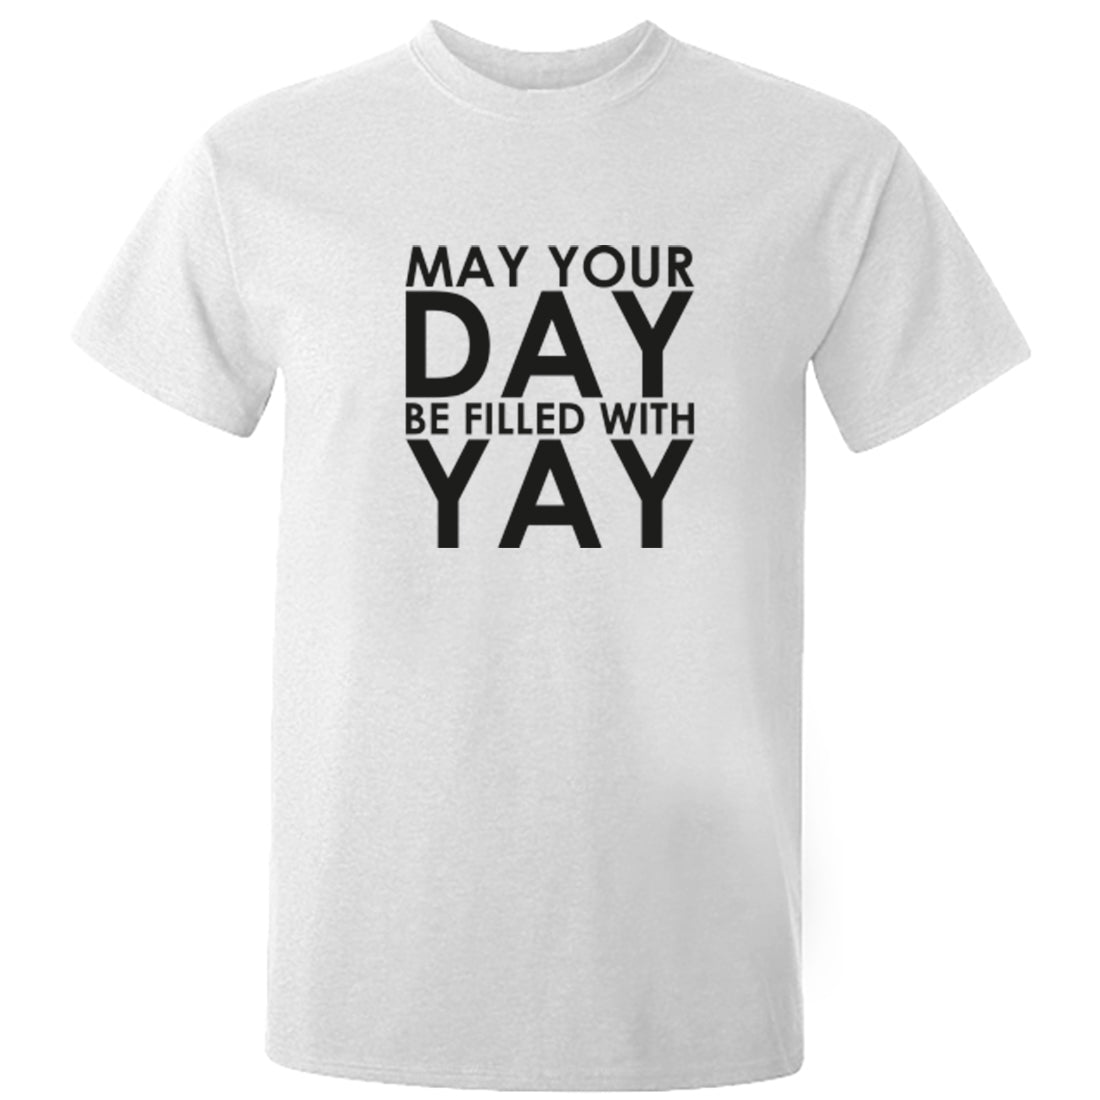 May Your Day Be Filled With Yay Unisex Fit T-Shirt K1988 - Illustrated Identity Ltd.